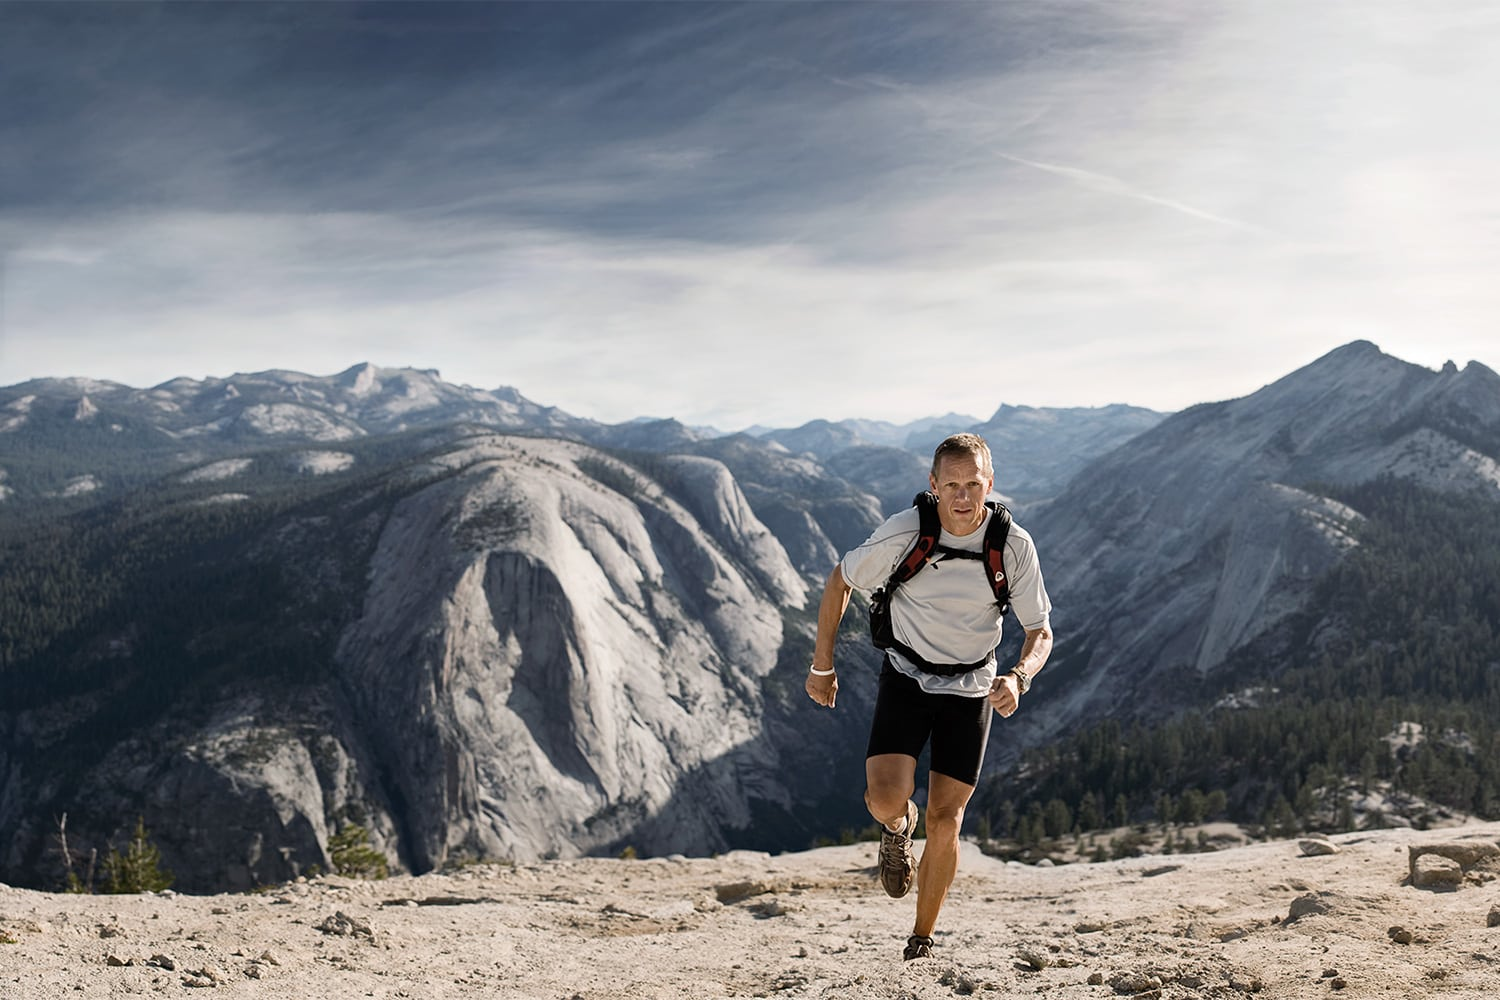 Athletic-lifestyle-man-charlie-engle-running-up-half-dome-Rod-McLean